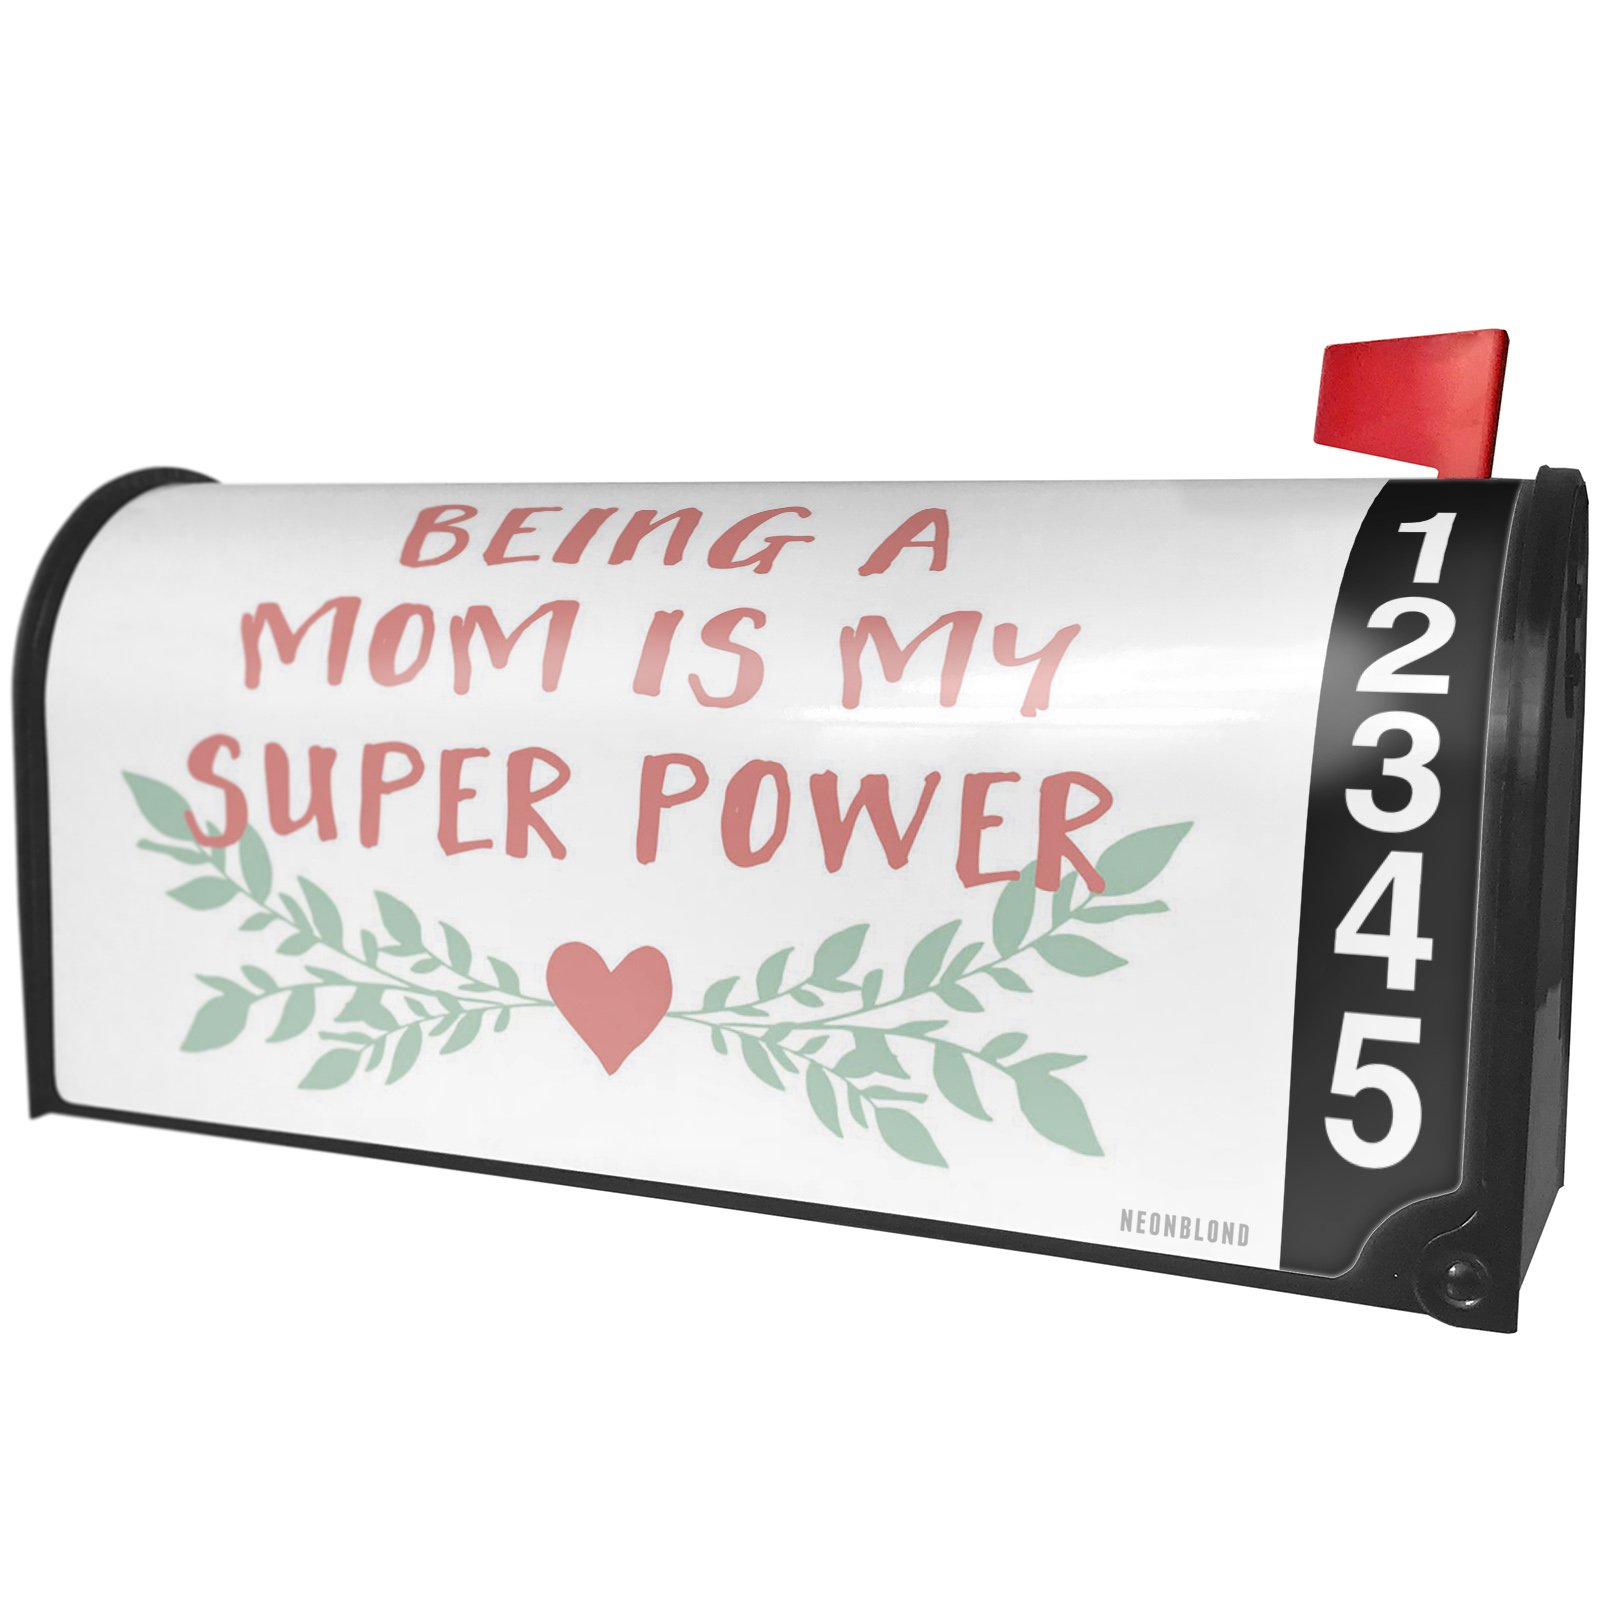 NEONBLOND Being a Mom is My Super Power Mother's Day Heart with Leaves Magnetic Mailbox Cover Custom Numbers